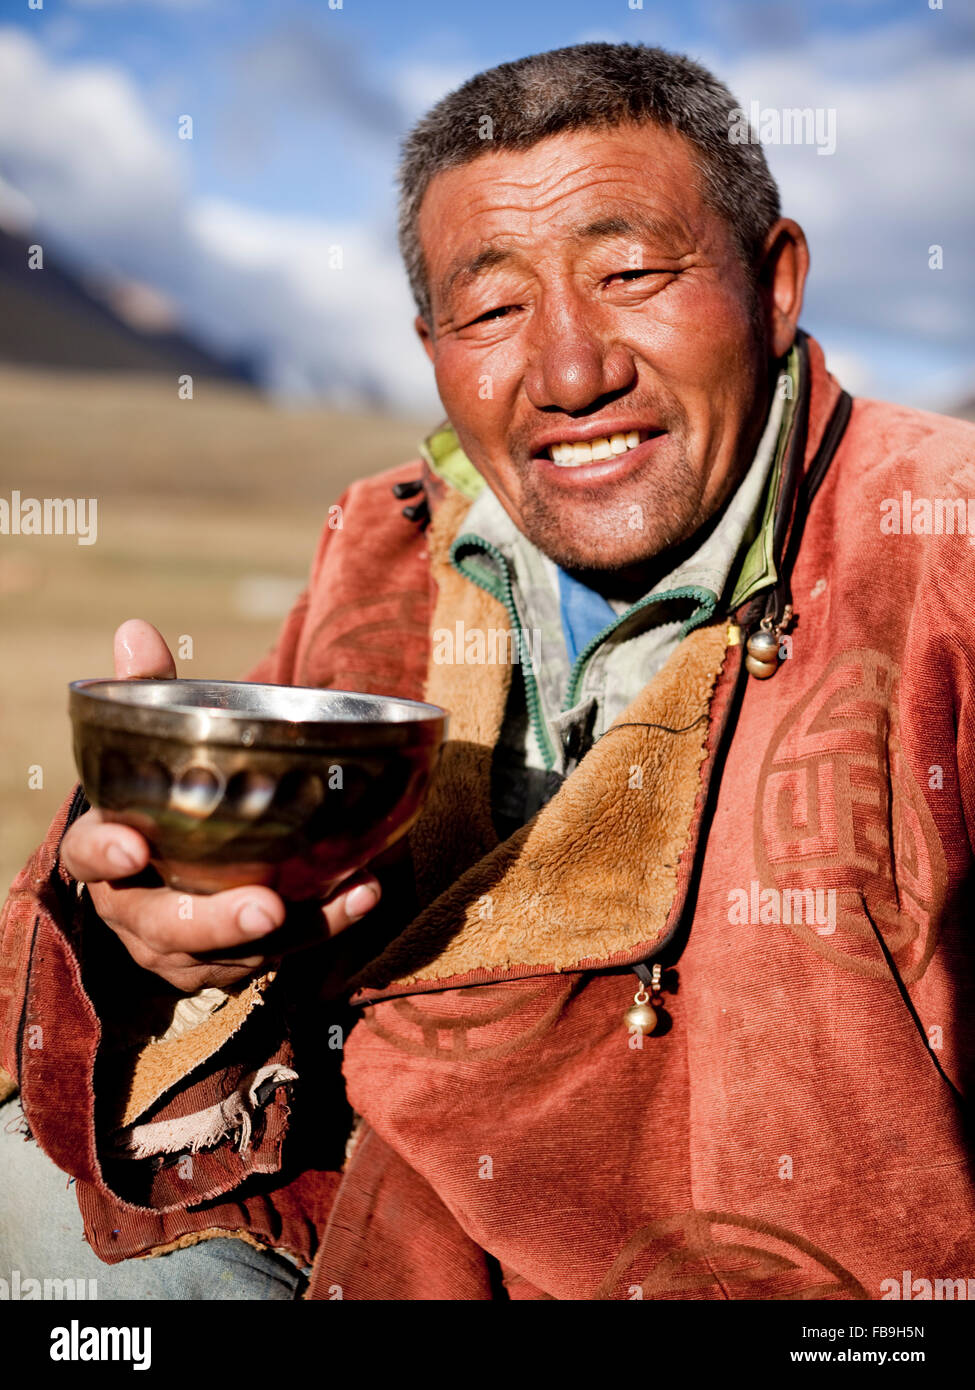 Idesh, a local herder and guide, rests with a hot tea in Kharkhiraa Turgen National Park, Mongolia. - Stock Image